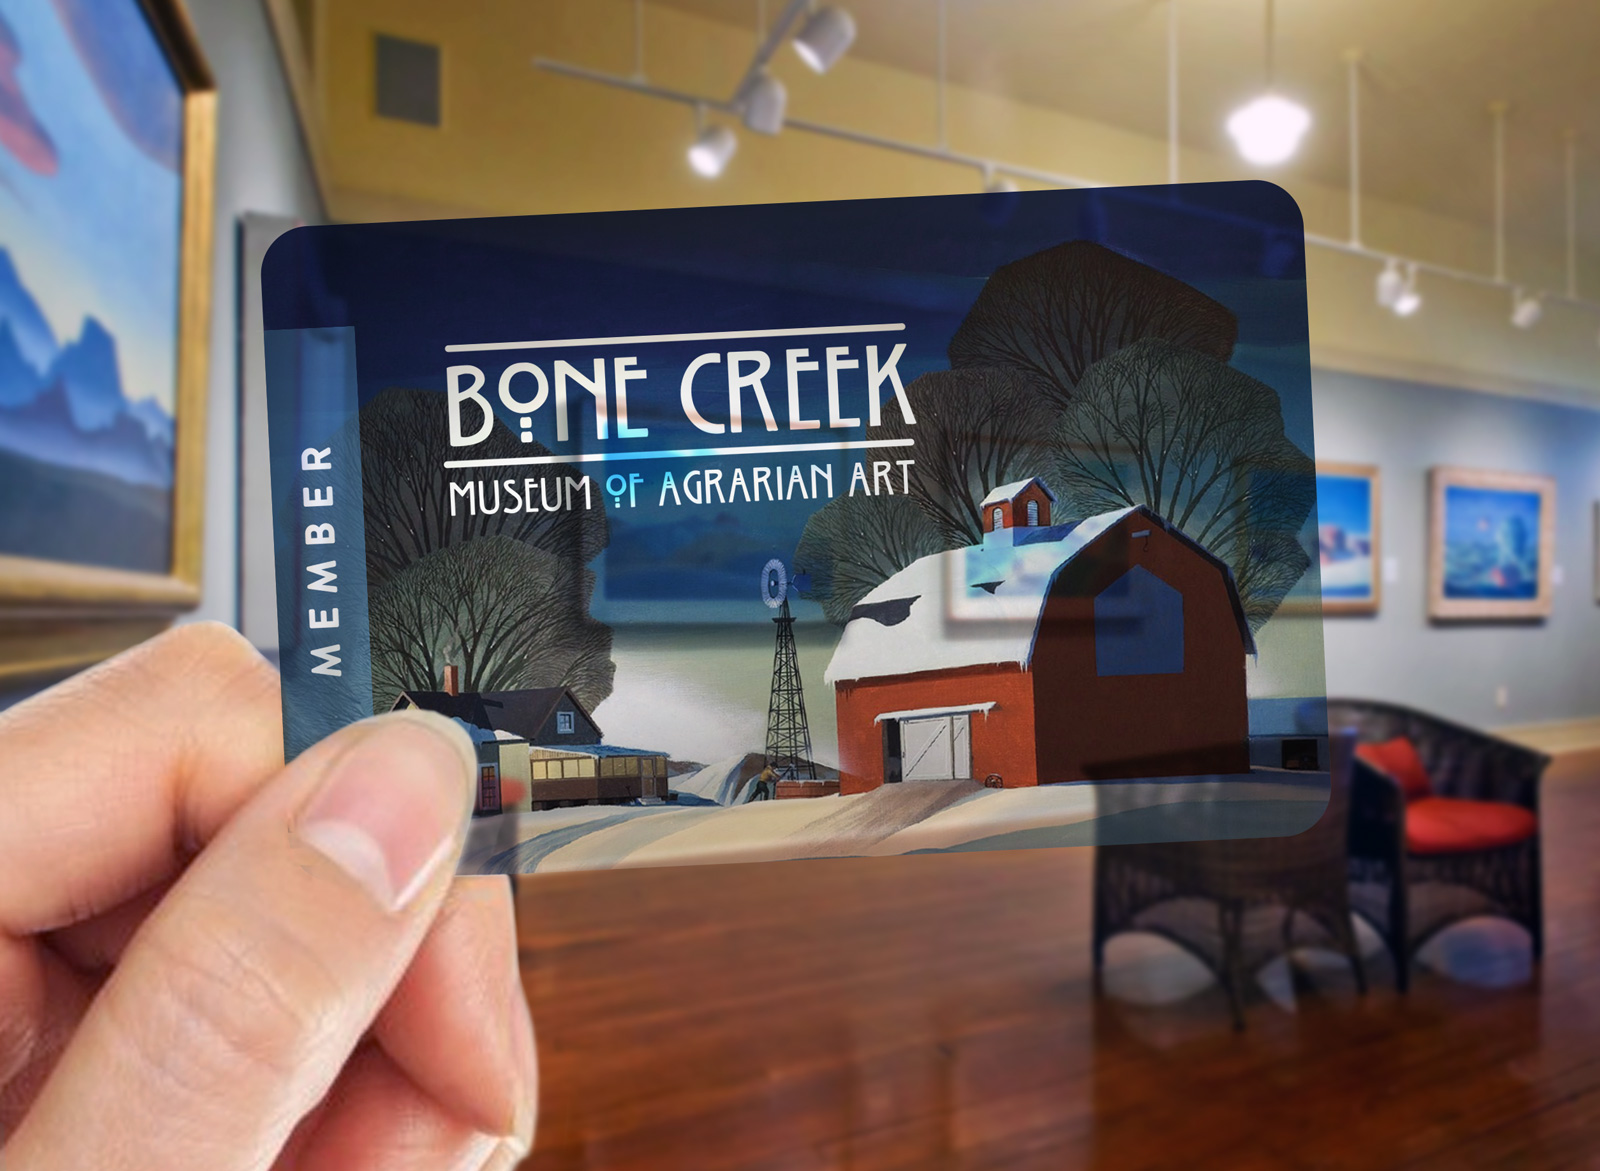 Bone-Creek-Museum-membership-card-gallery-space